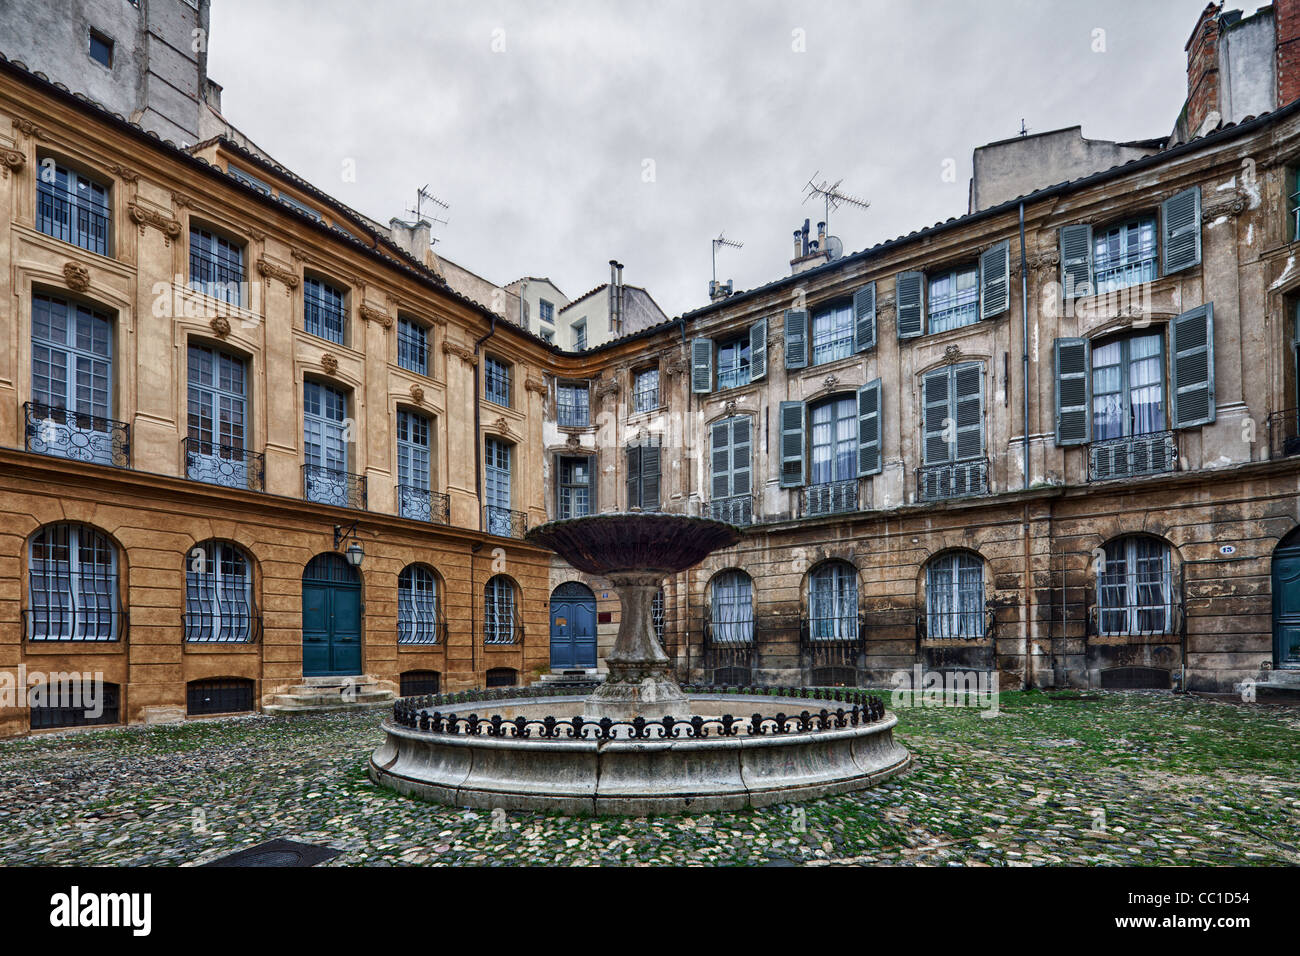 square in old part of town, Aix-en-Provence, France - Stock Image